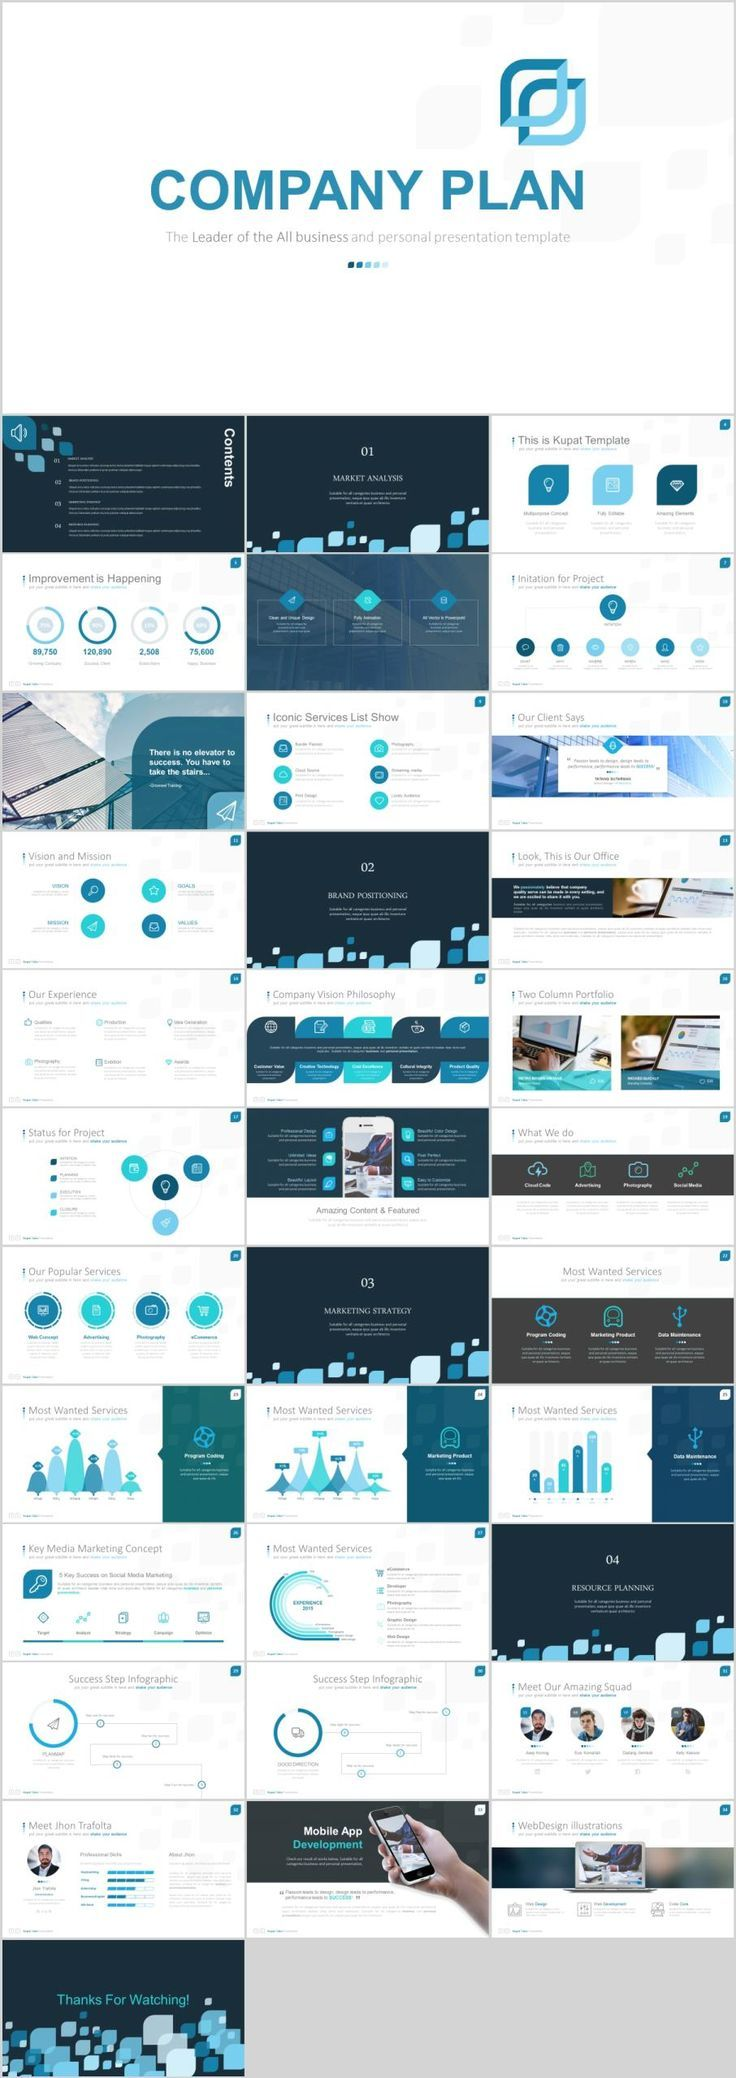 Business infographic blue company plan powerpoint template business infographic data visualisation blue company plan powerpoint template powerpoint templates presentation flashek Choice Image